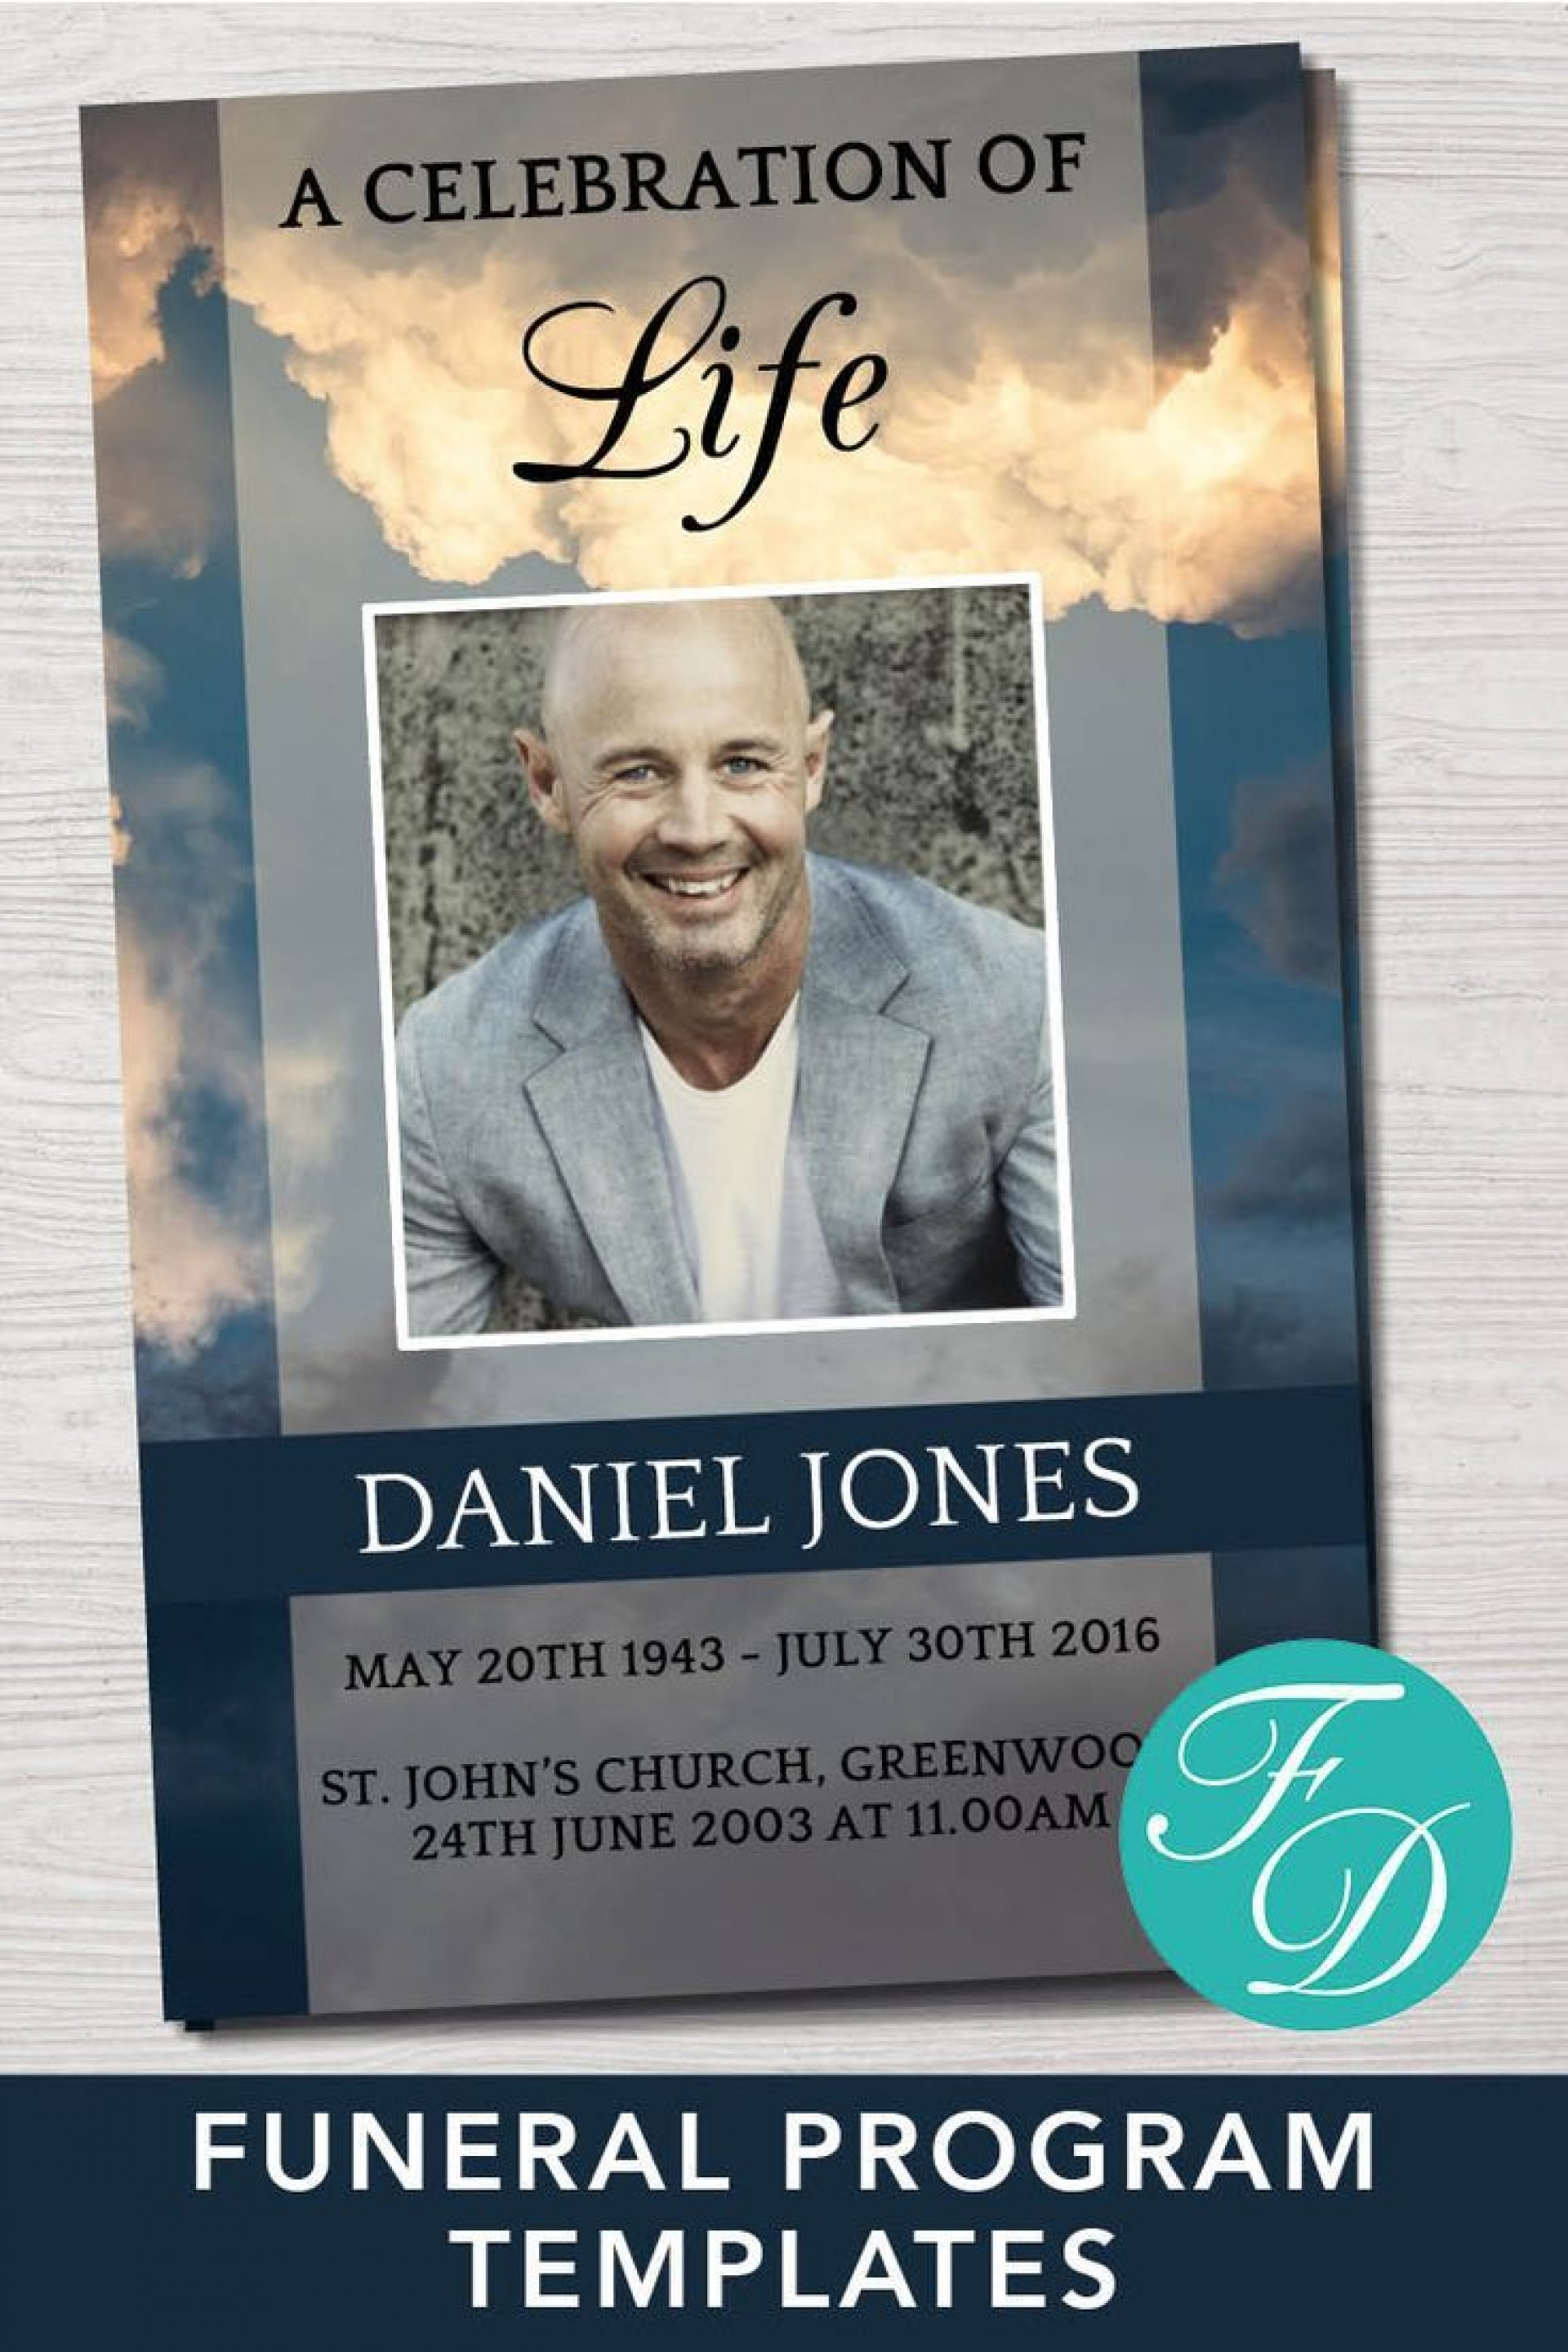 001 Simple Free Celebration Of Life Program Template Download Example 1920